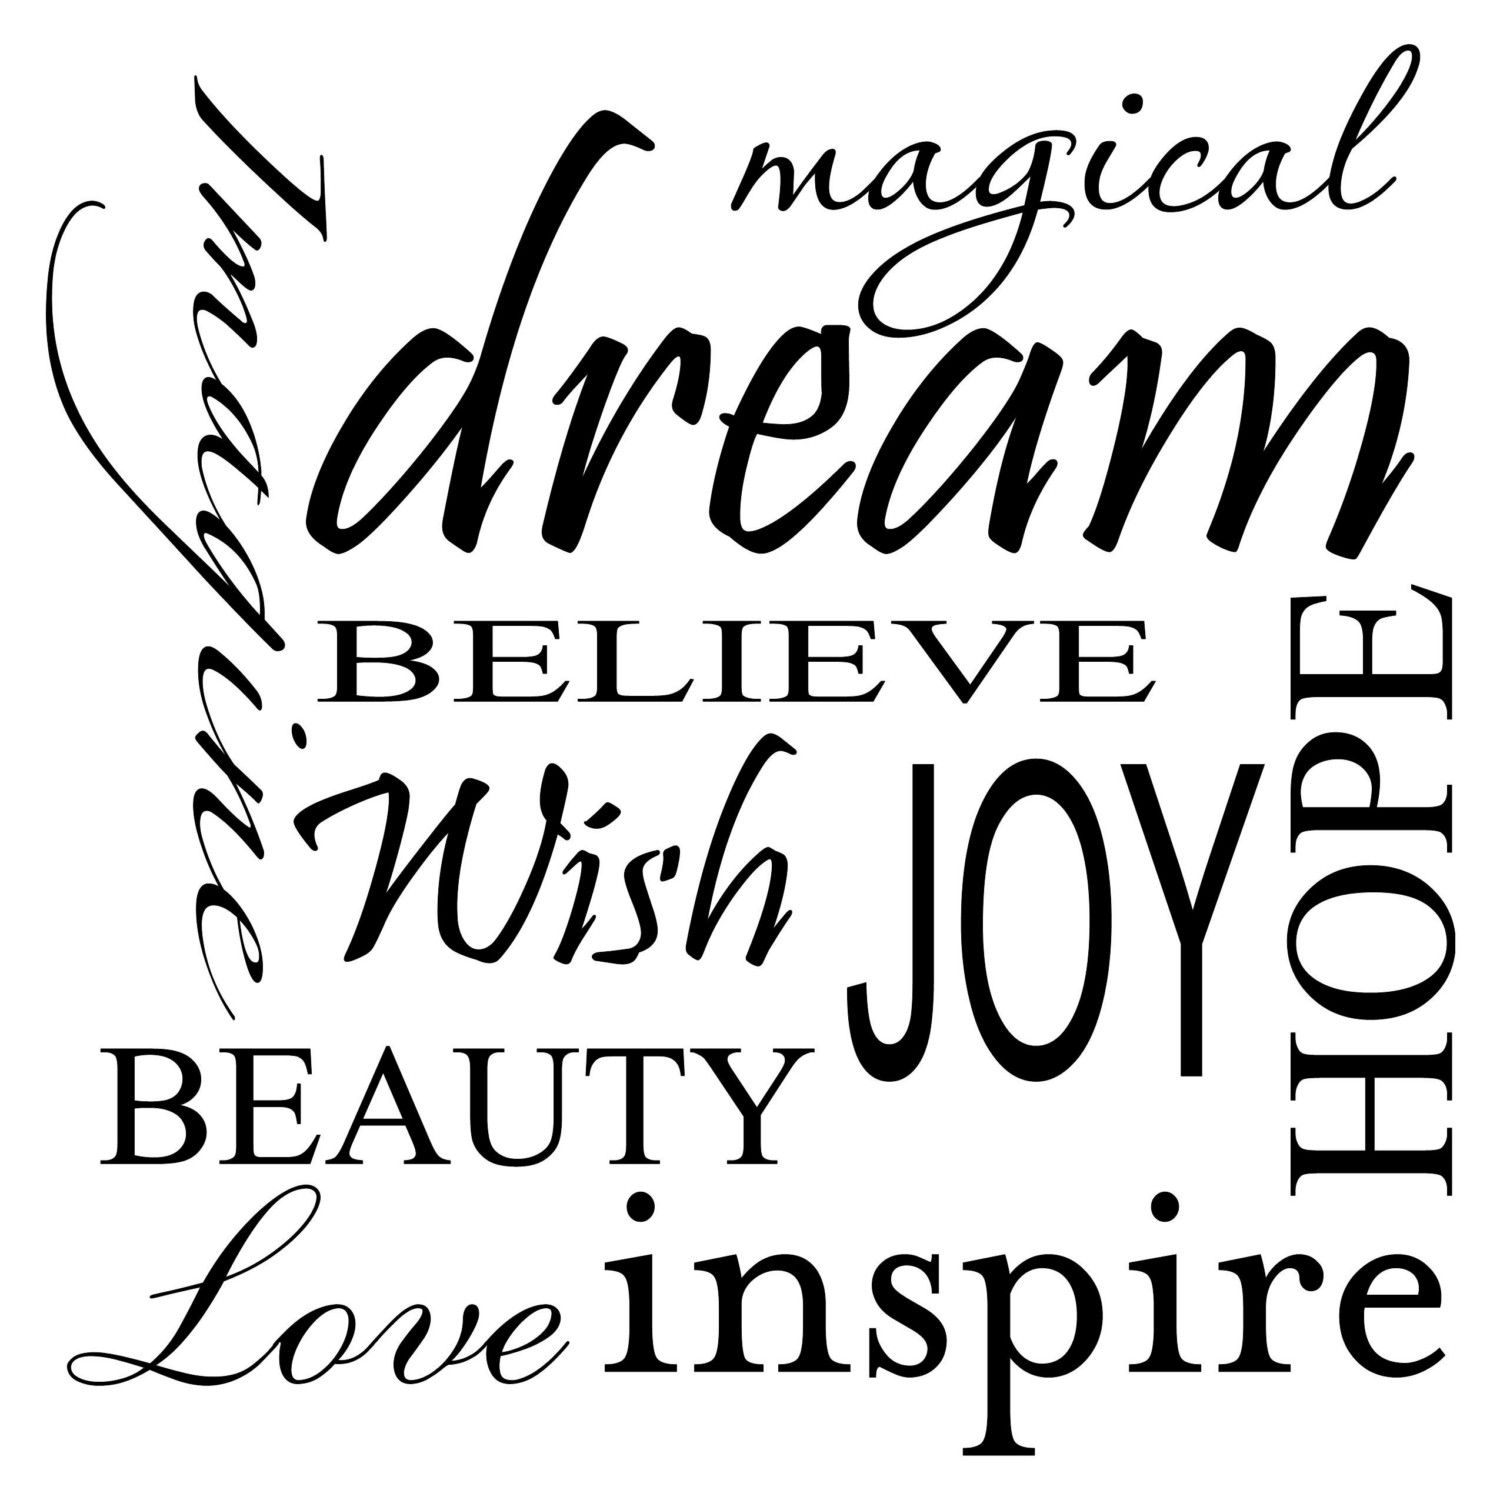 IMAGINE LOVE BEAUTY INSPIRE MAGICAL DREAM BELIEVE HOPE JOY WISH Vinyl wall lettering quotes and sayings